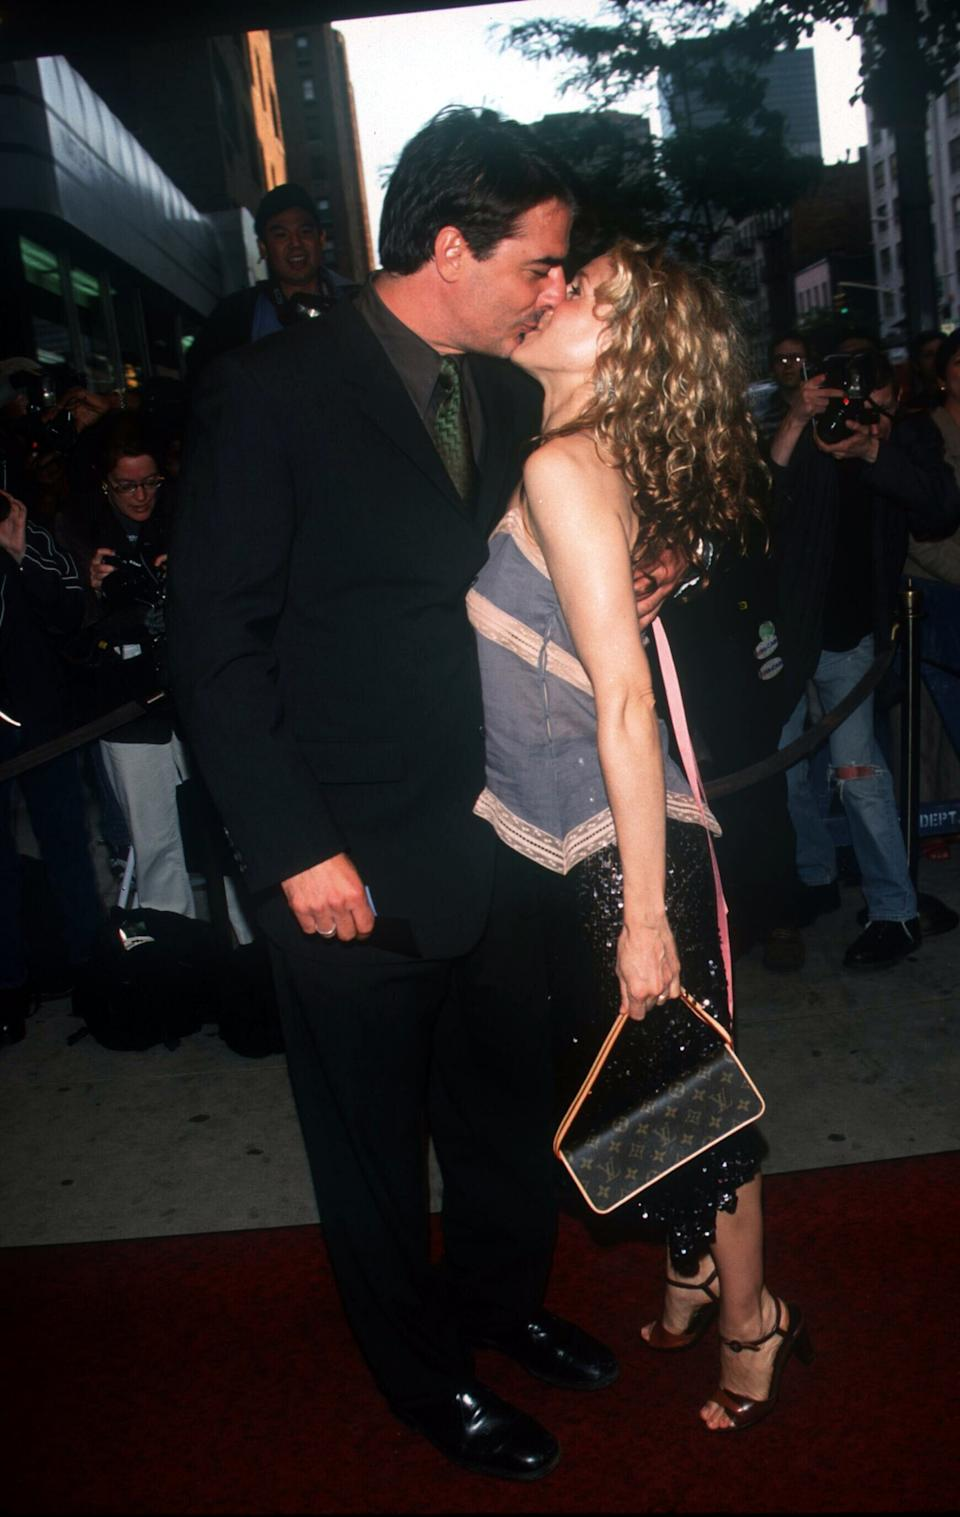 05/30/00 New York City  HBO's 'Sex And The City' kicks-off a new season with a star-studded screening and party.  'Sex...' co-stars Chris Noth and Sarah Jessica Parker, share a real life kiss.    Photo by Evan Agostini/ImageDirect